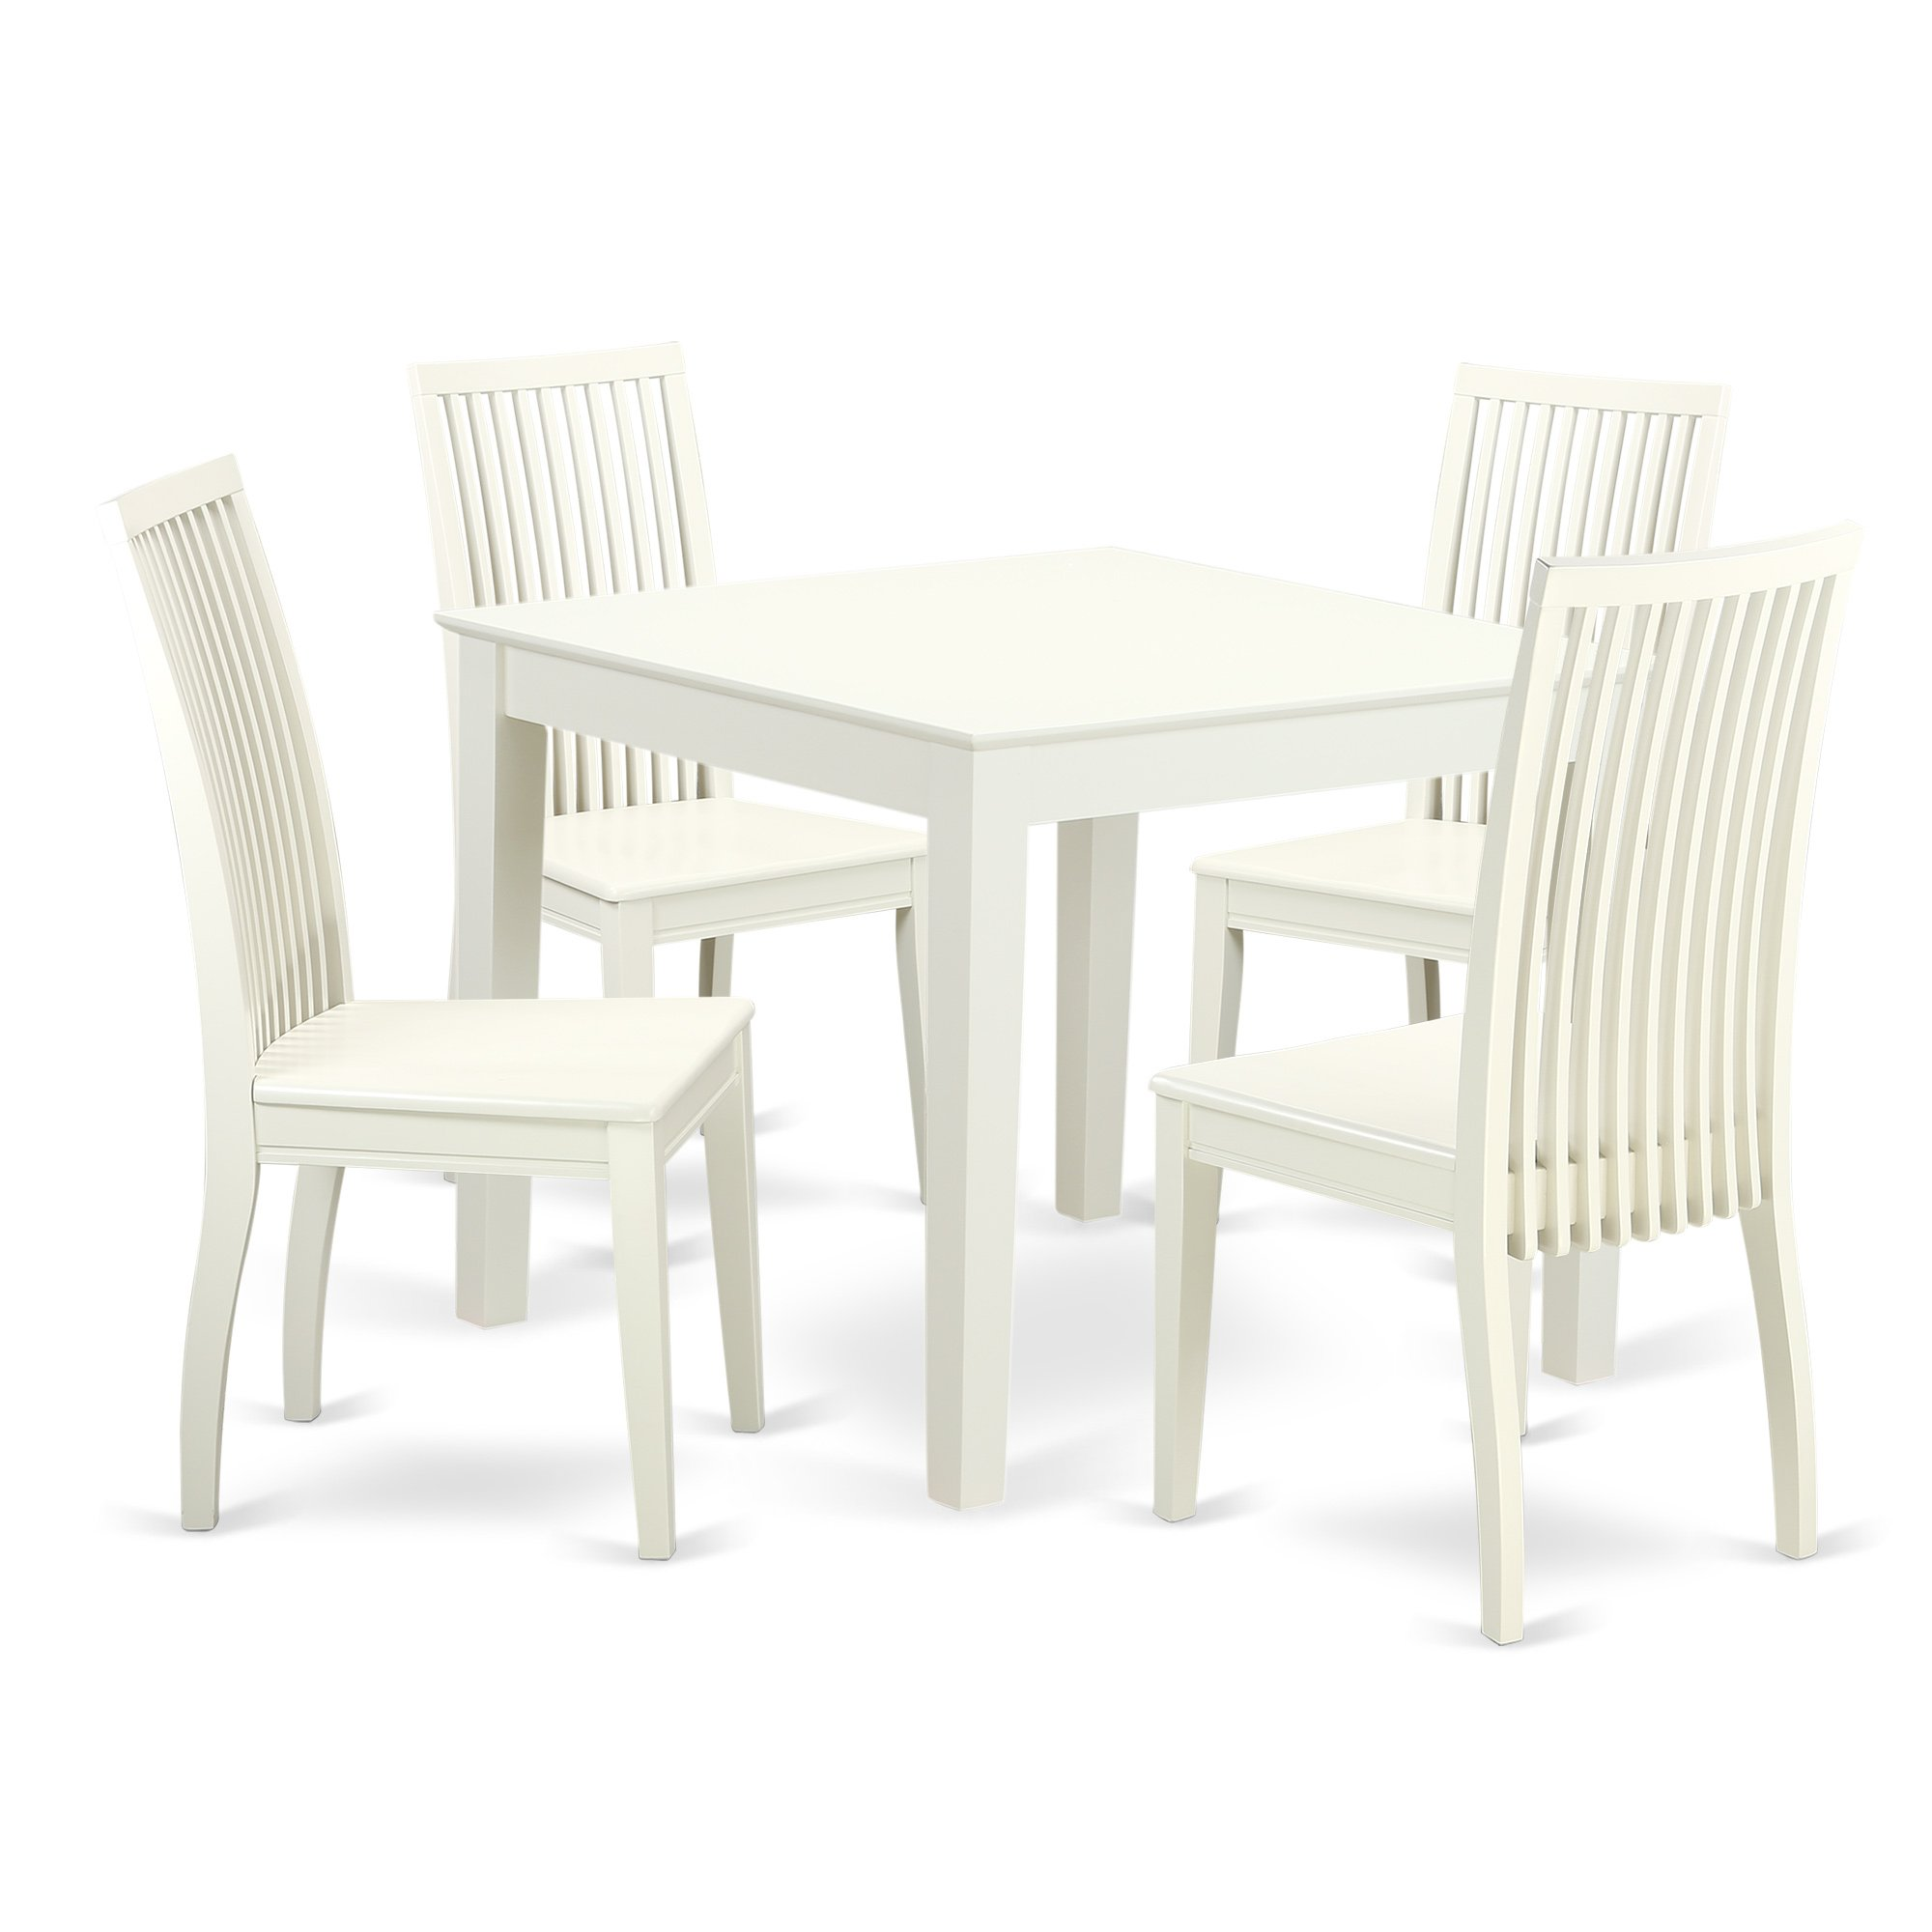 5-Piece Dinette table set - Table and 4 wood seat dining chairs in linen white finish